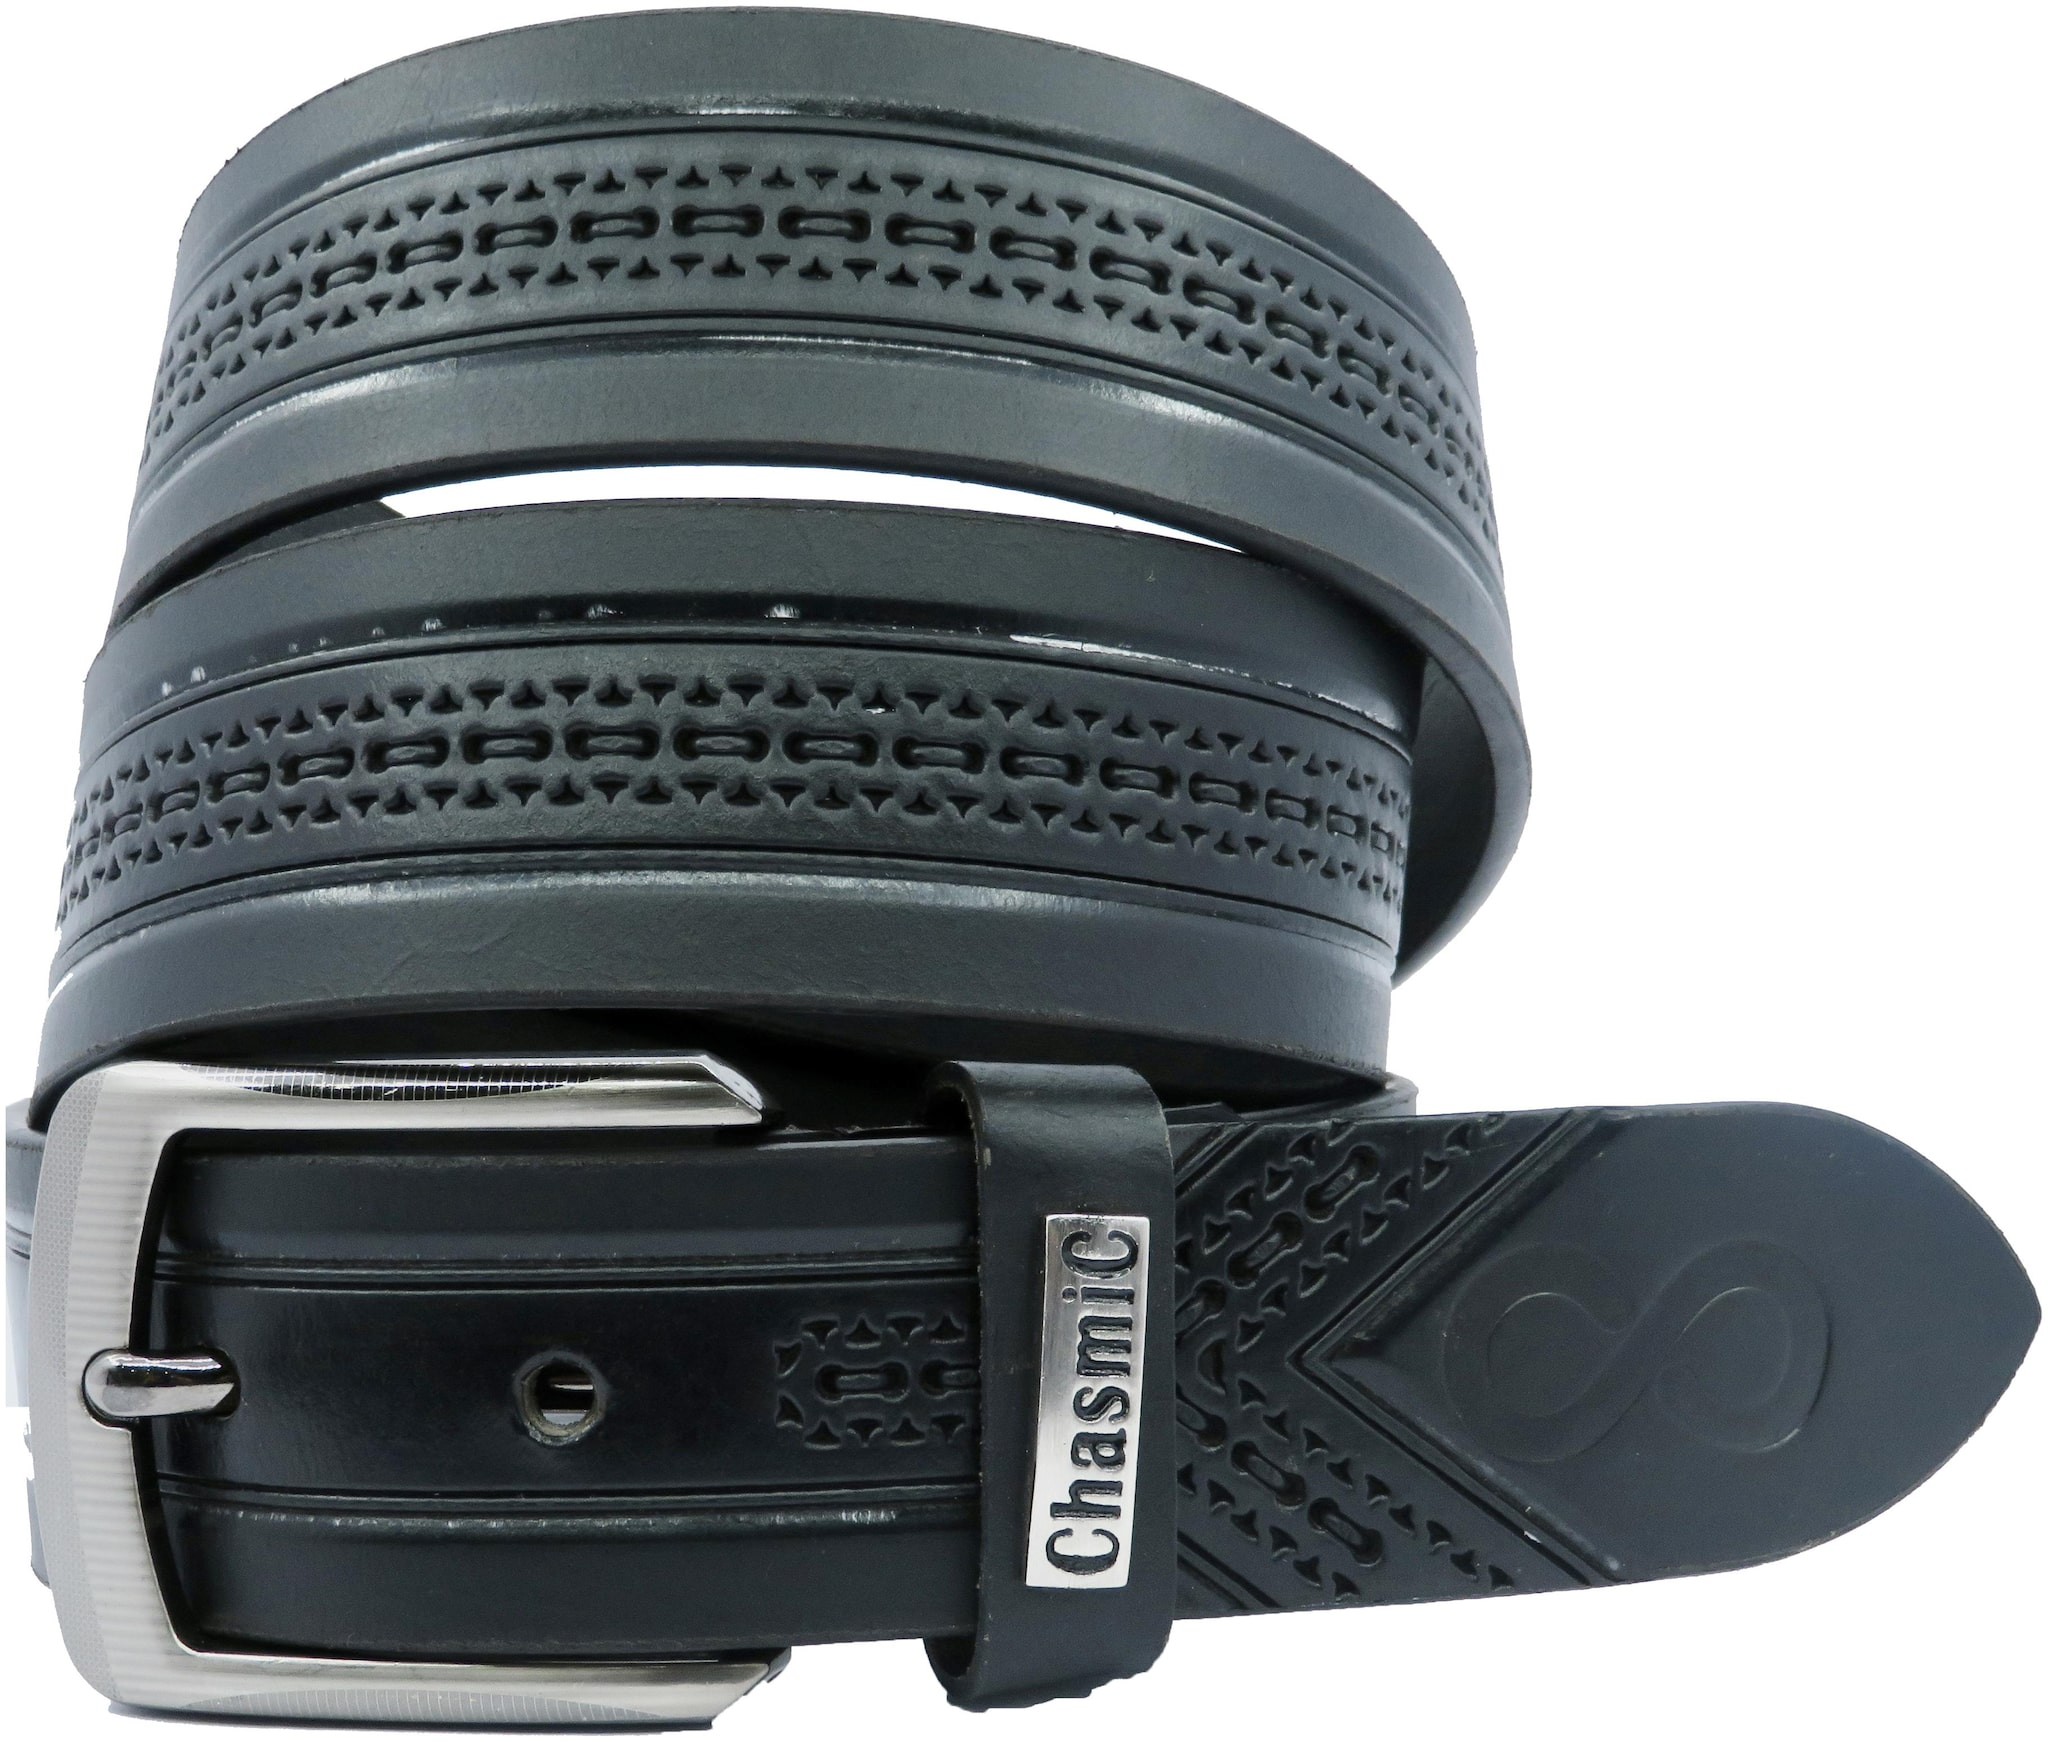 CHASMIC Men Casual, Party, Formal, Evening Black Genuine Leather Belt by Techchasmic India